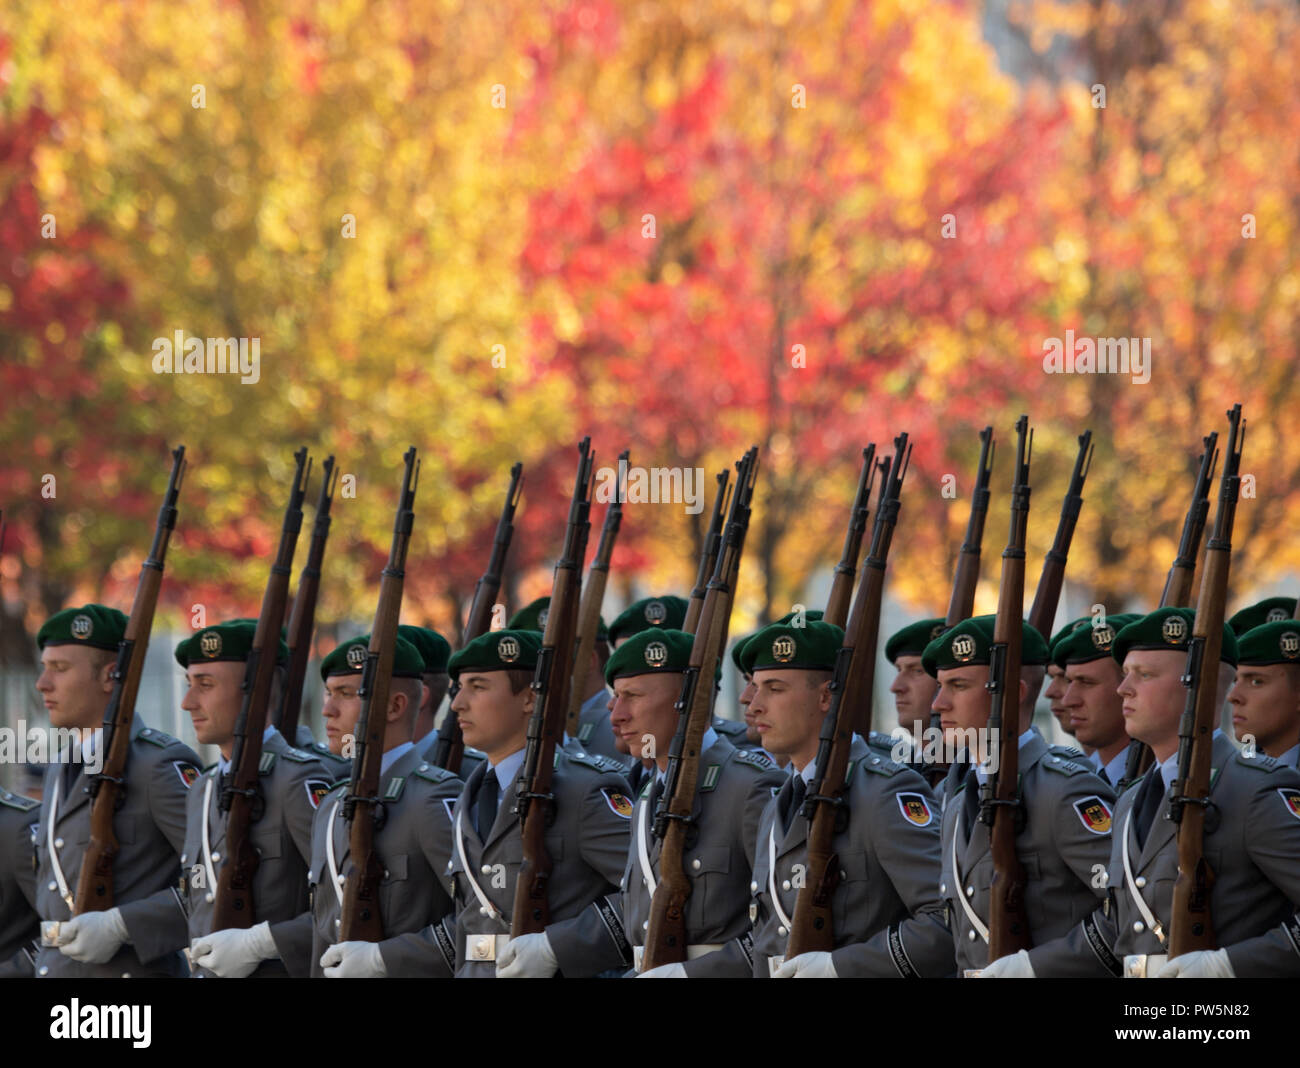 12 October 2018, Berlin: 12October 2018, Germany, Berlin:Soldiers of the guard battalion of the German Armed Forces have entered the reception of the Slovenian Prime Minister Sarec with military honours in the protocol courtyard of the Chancellery, in the background the foliage of trees shines in autumnal colours. Photo: Ralf Hirschberger/dpa - Stock Image